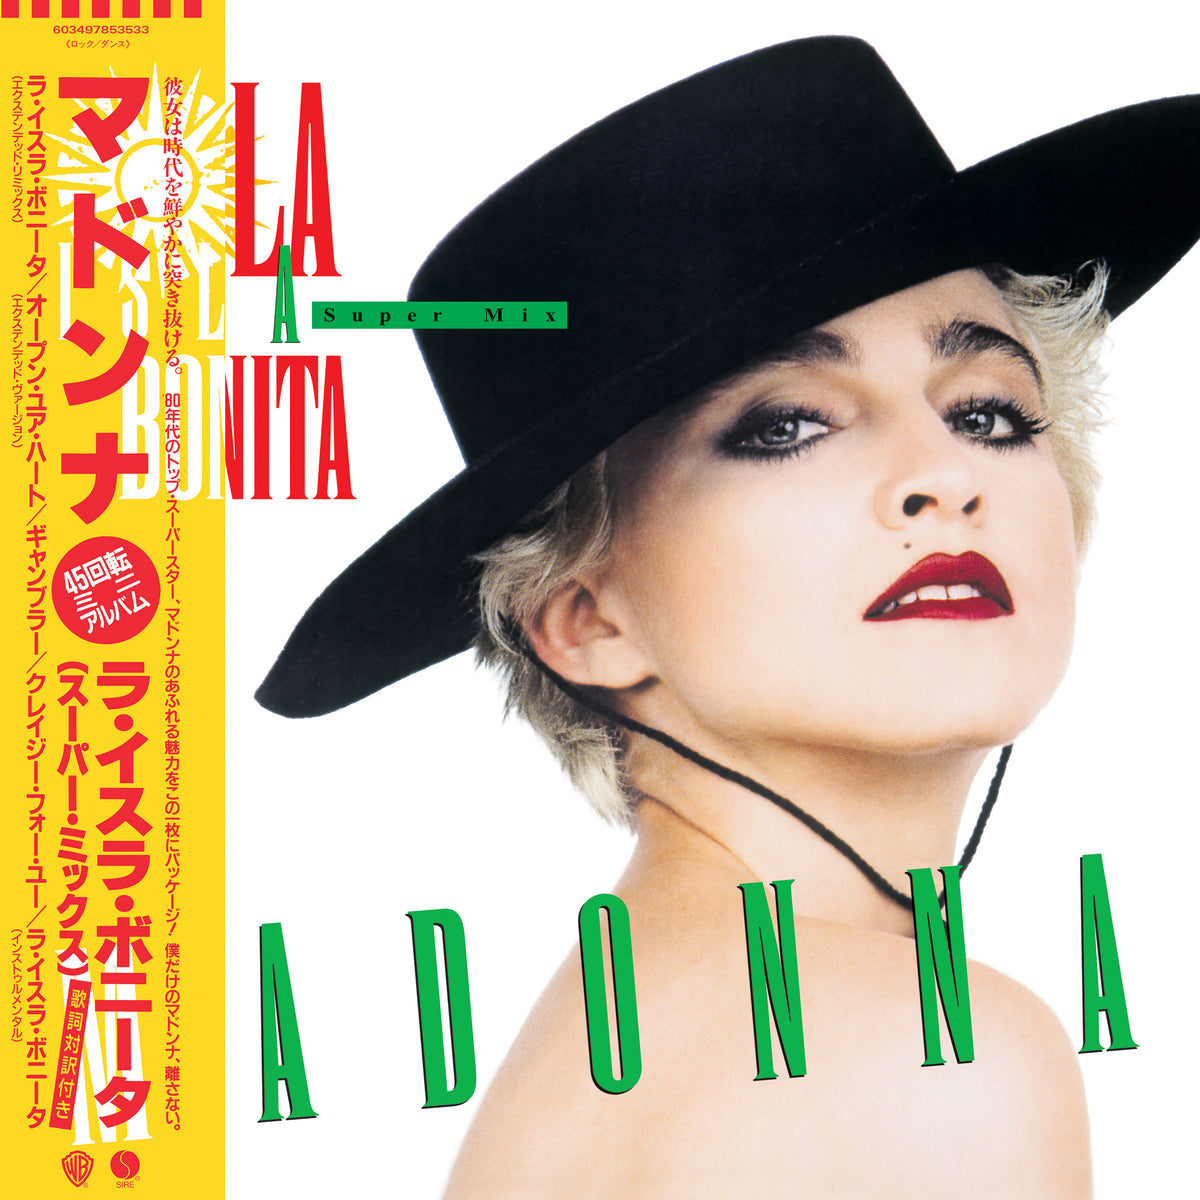 Madonna: La Isla Bonita - Super Mix (Colored Vinyl) Vinyl LP (Record Store Day)